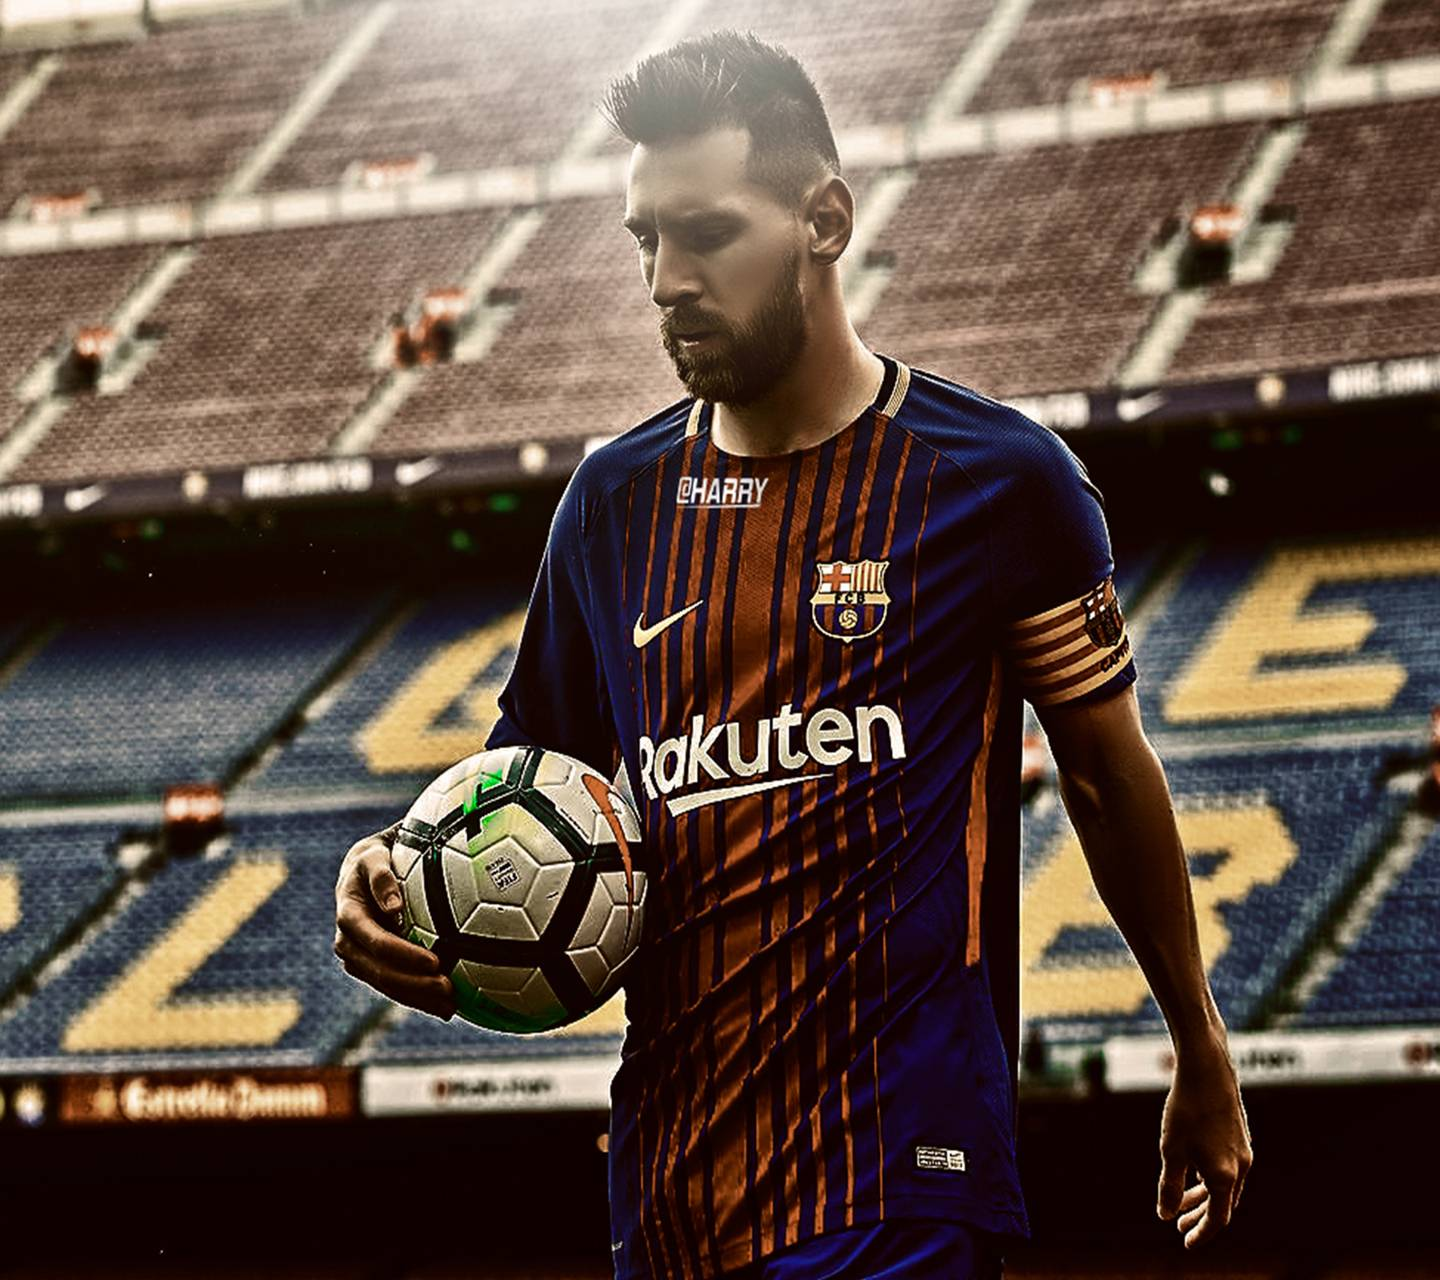 Wallpaper Of Messi: Lionel Messi Wallpaper By Harrycool15